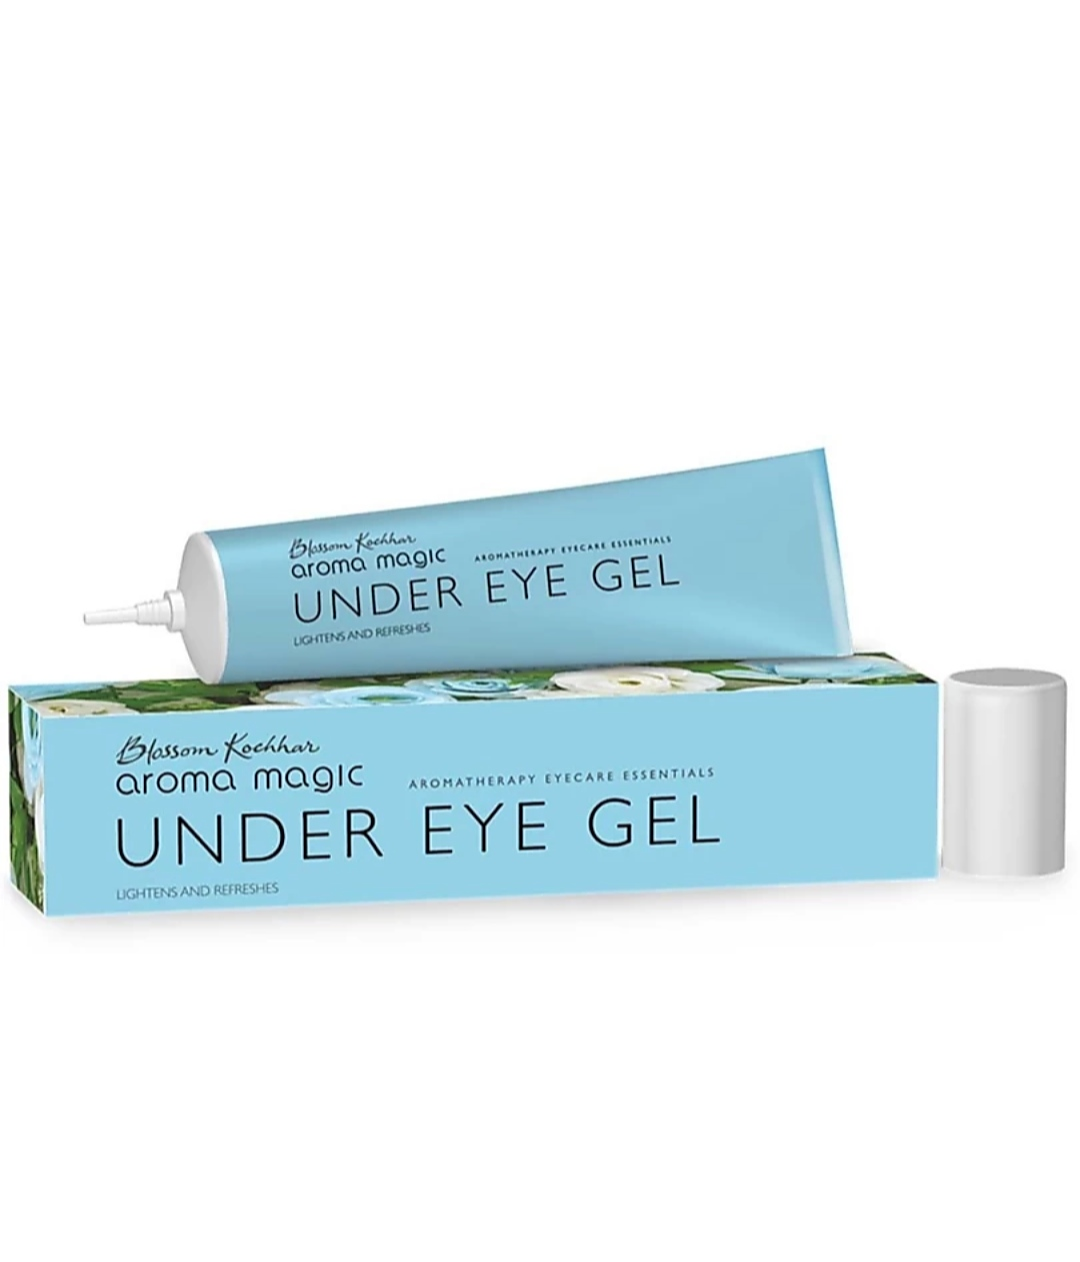 Aroma Magic Under Eye Gel